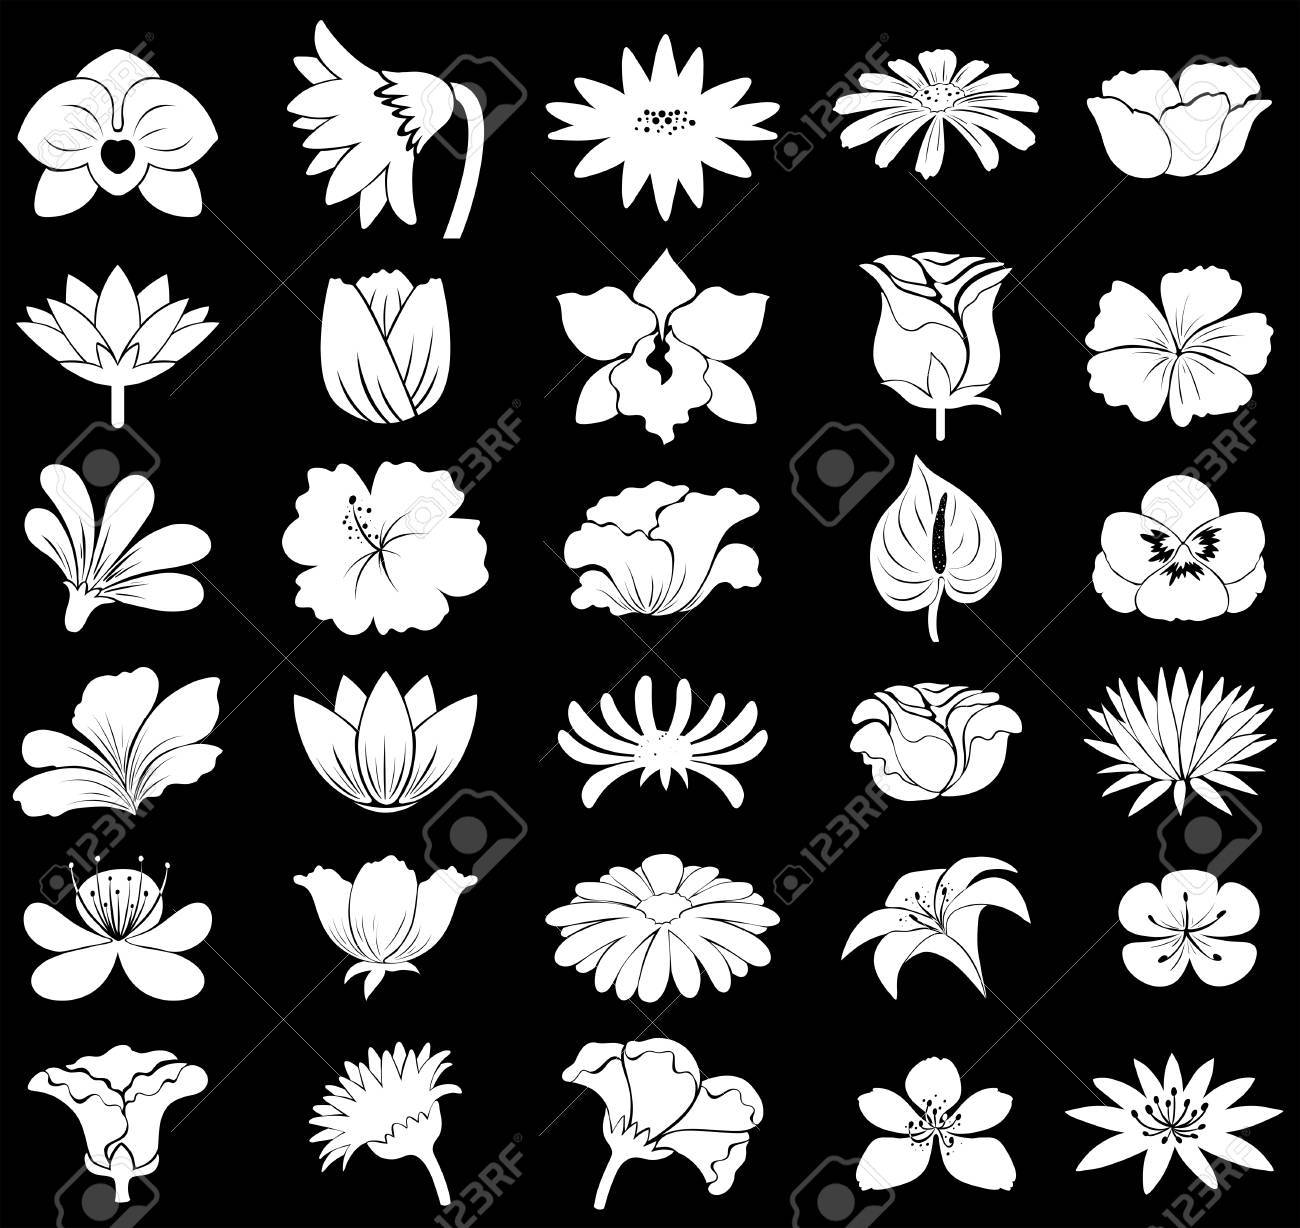 Collection of different types of flowers stock vector 38120315